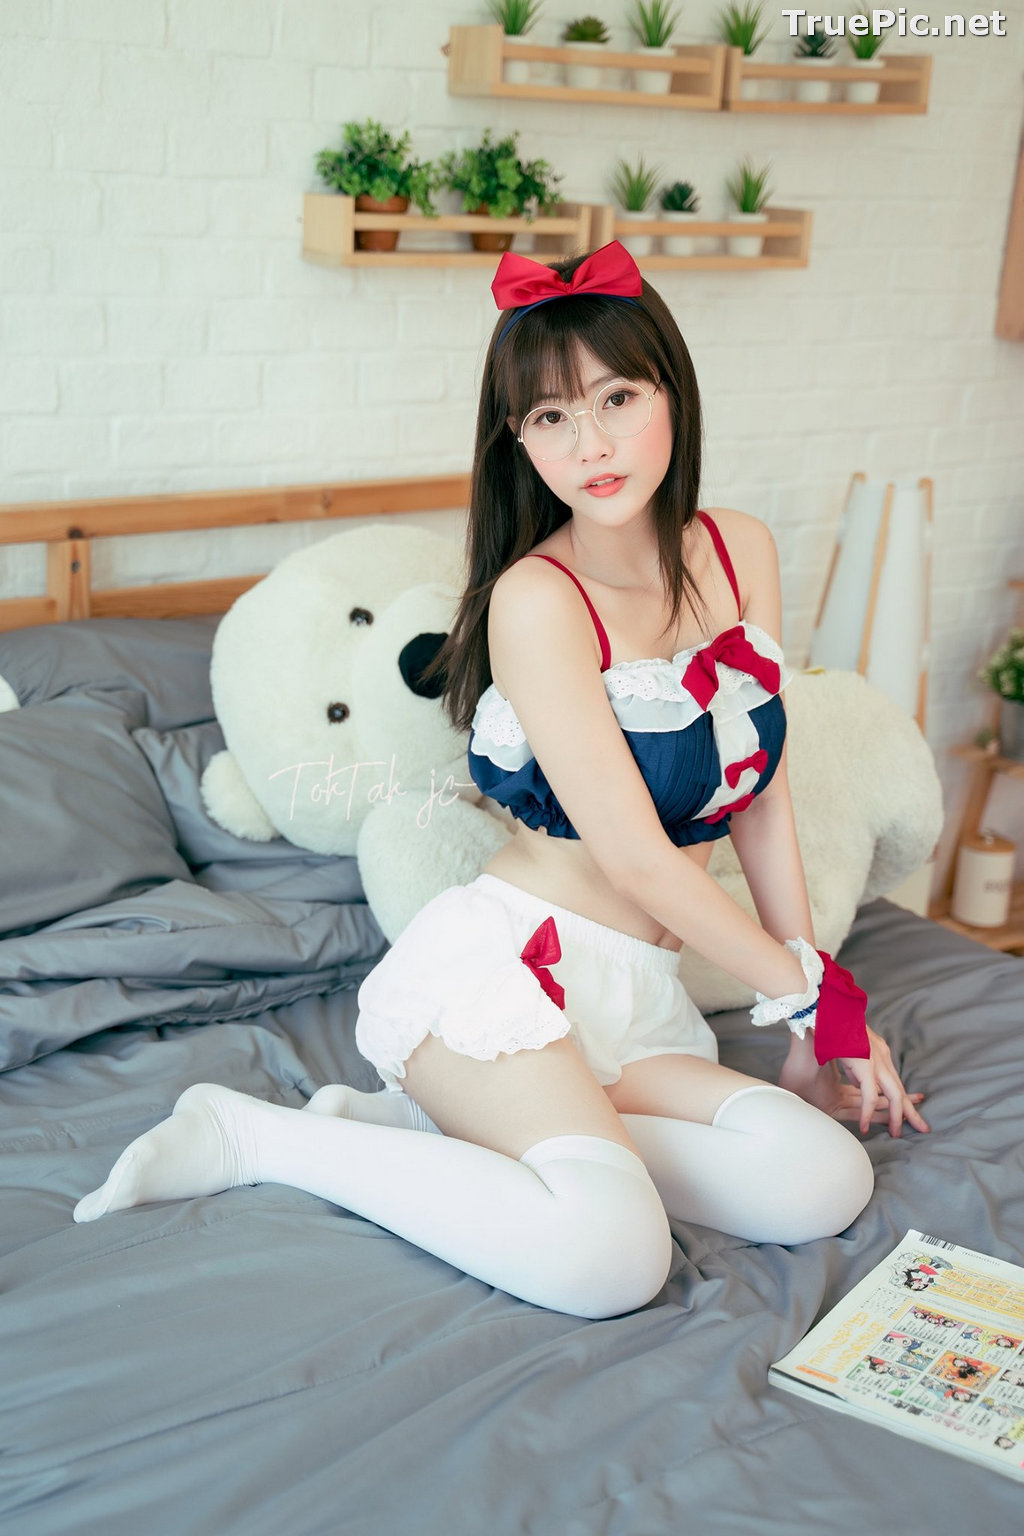 Image Thailand Model - Waralee Teerapanpong - Sailor Moon Lingerie - TruePic.net - Picture-9